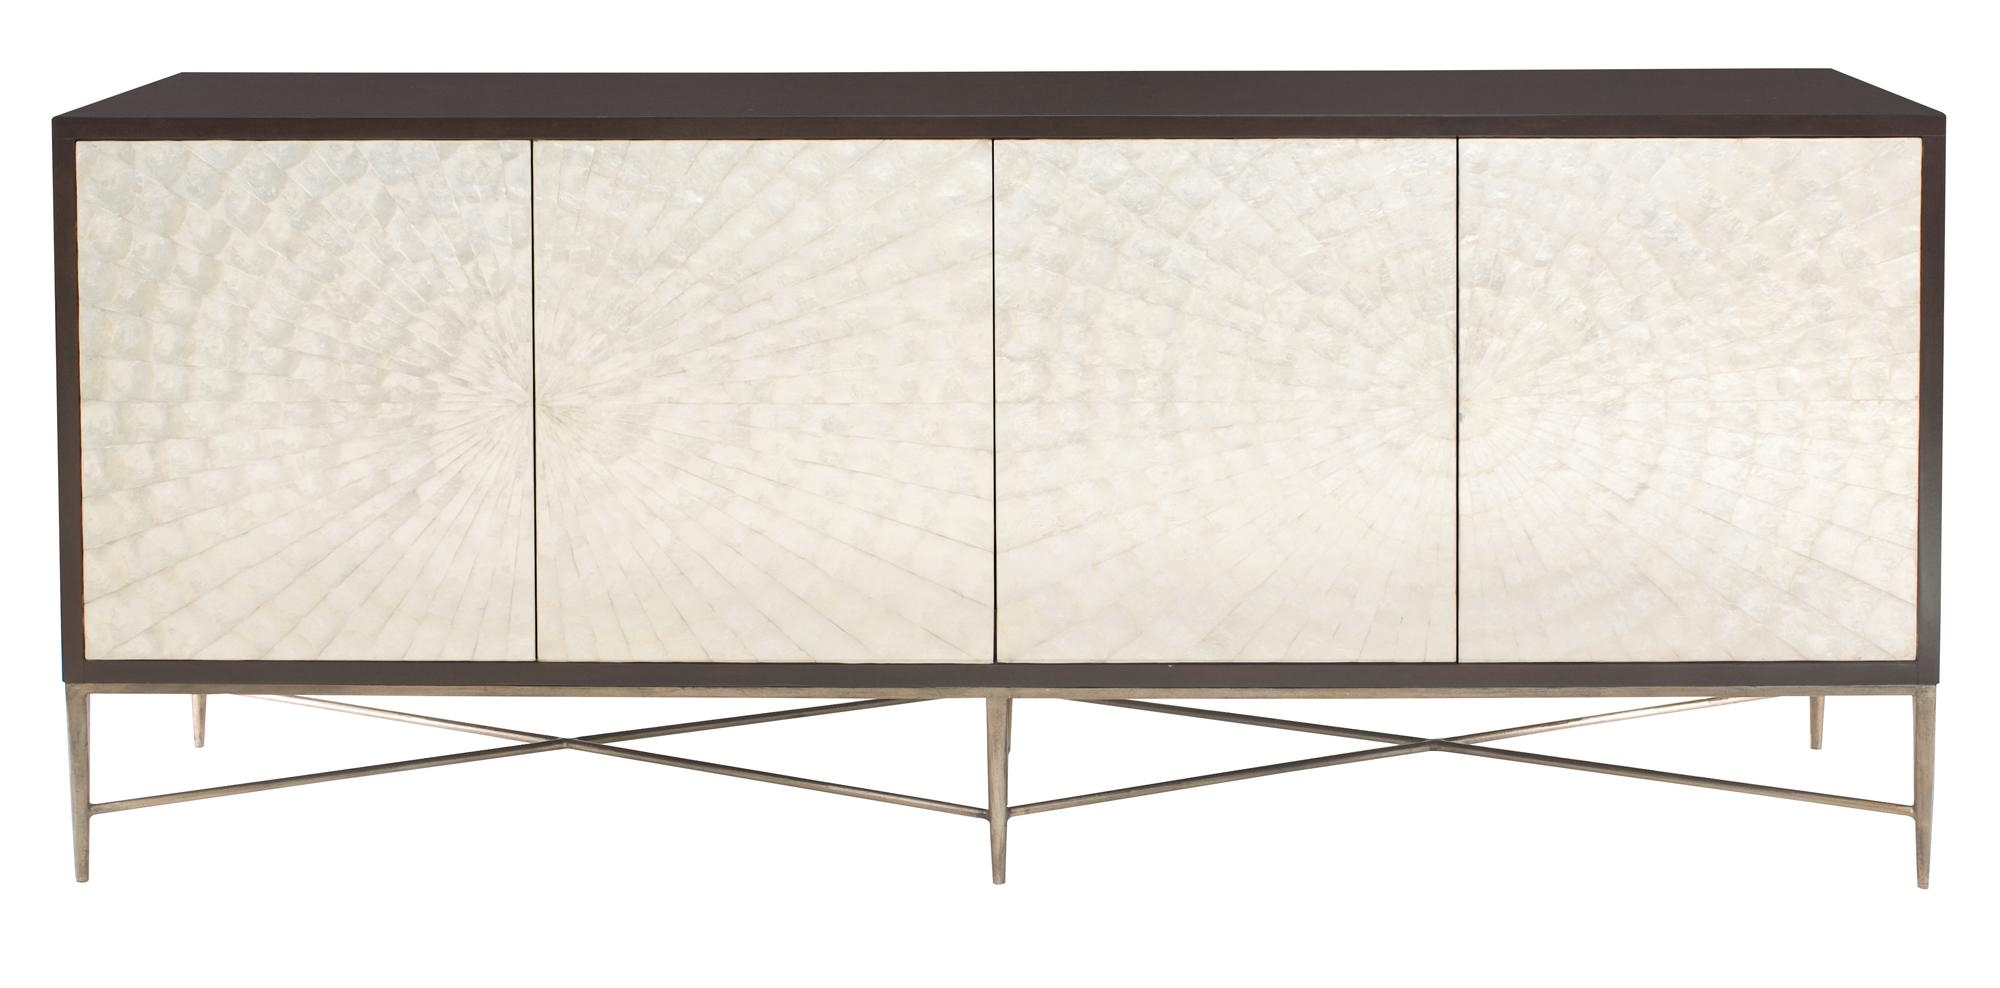 Console Tables | Bernhardt Regarding Bernhardt Console Tables (View 10 of 20)